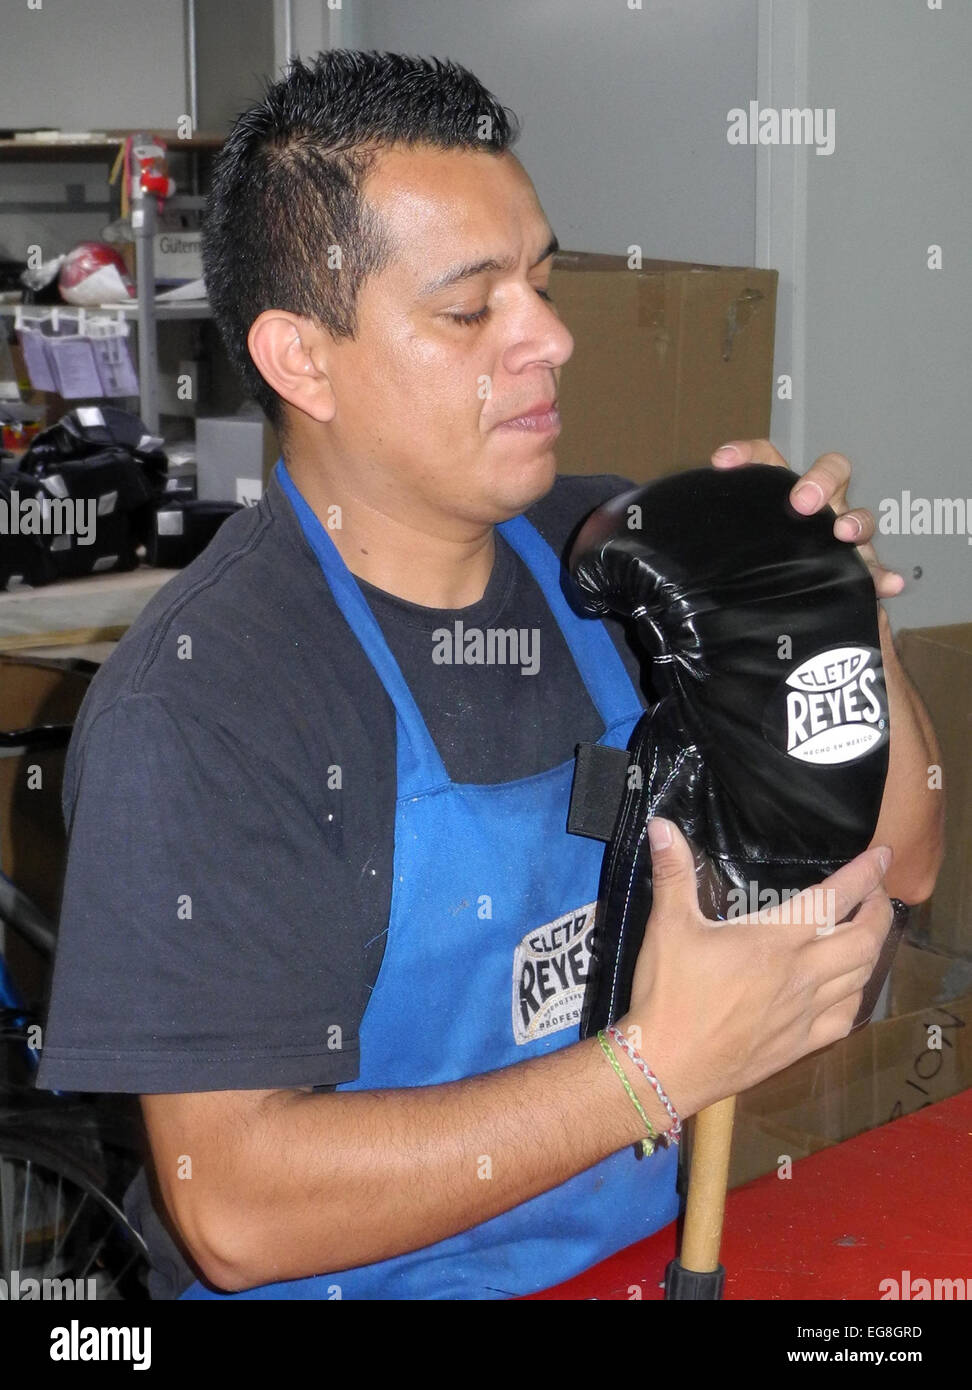 A staff member of manufacturer of boxing gloves Cleto Reyes